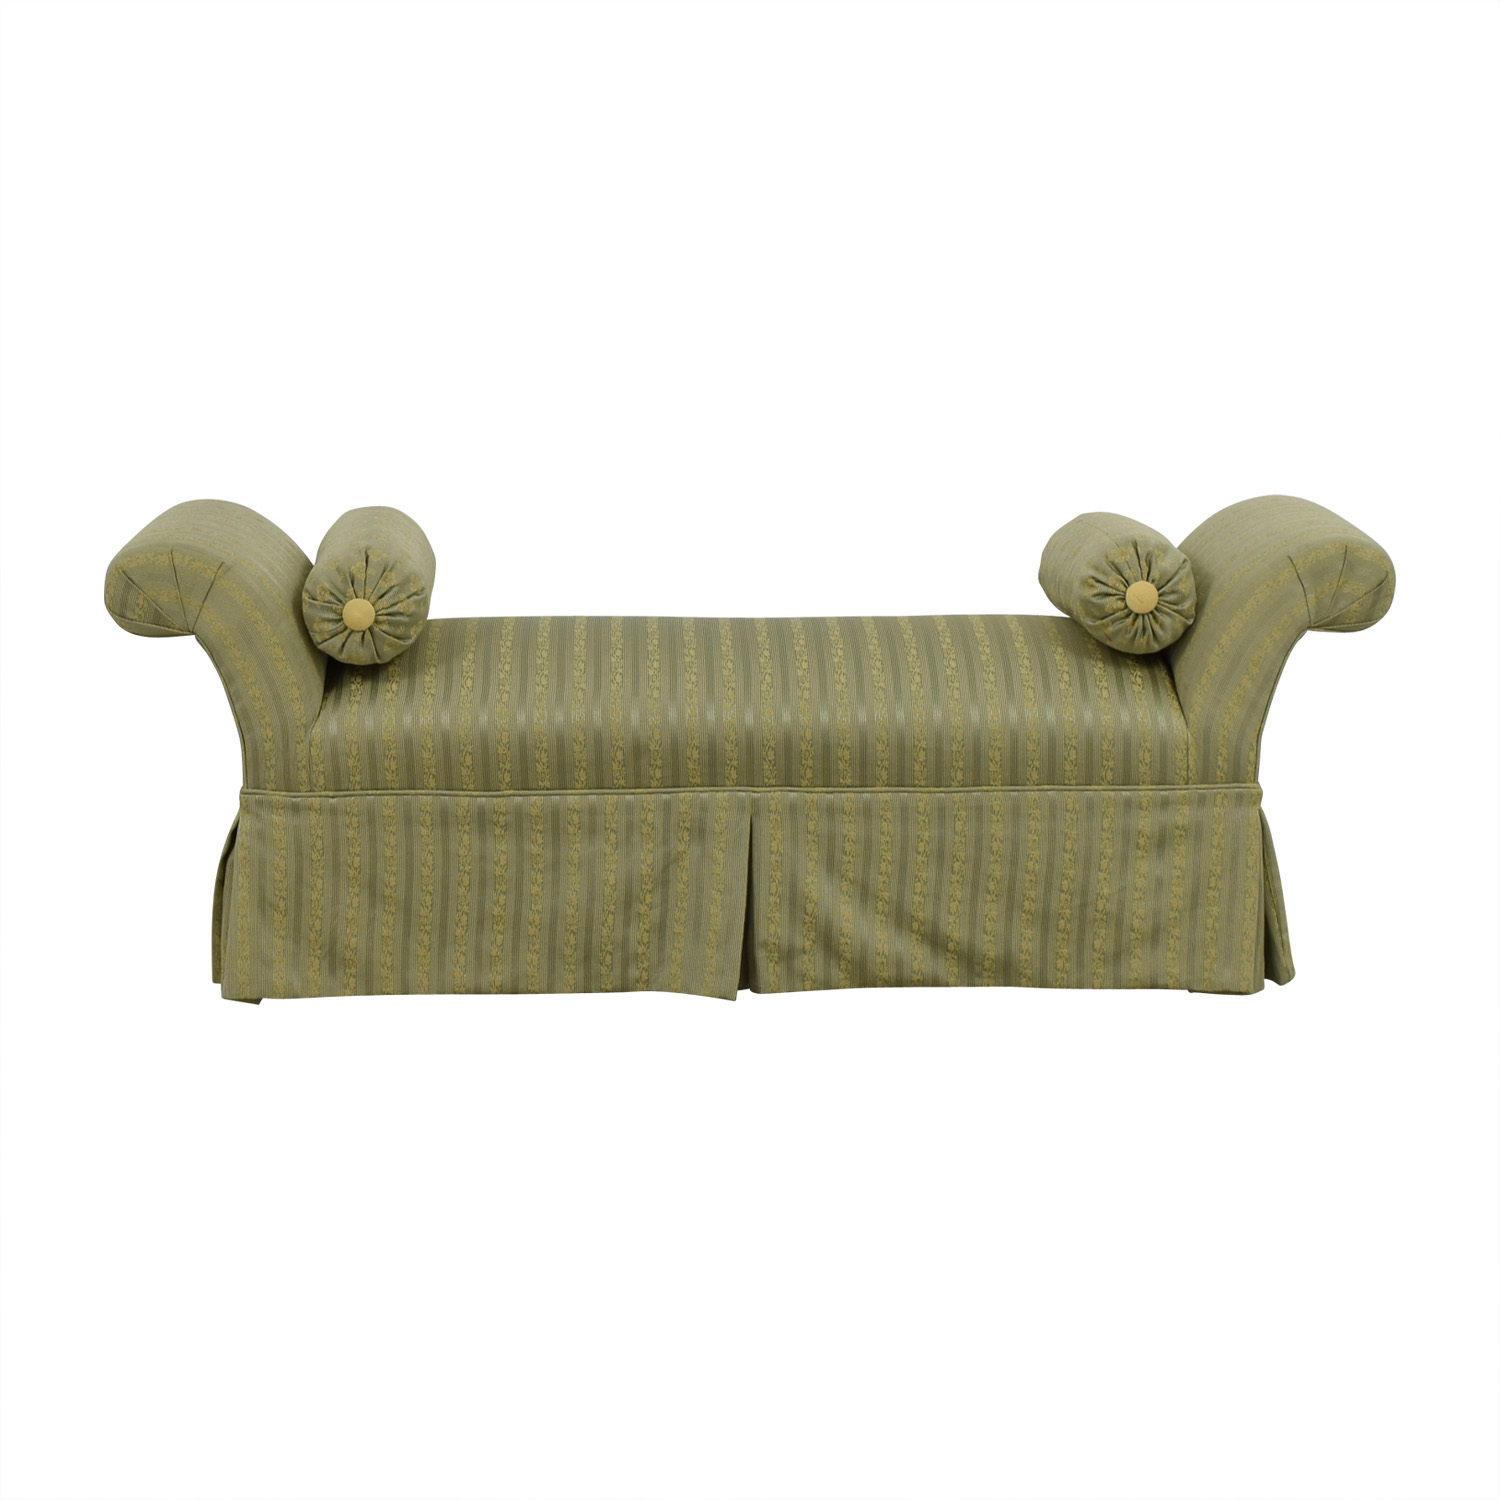 Two Toned Green Skirted Bedroom Bench with Neck Roll Pillows / Chairs